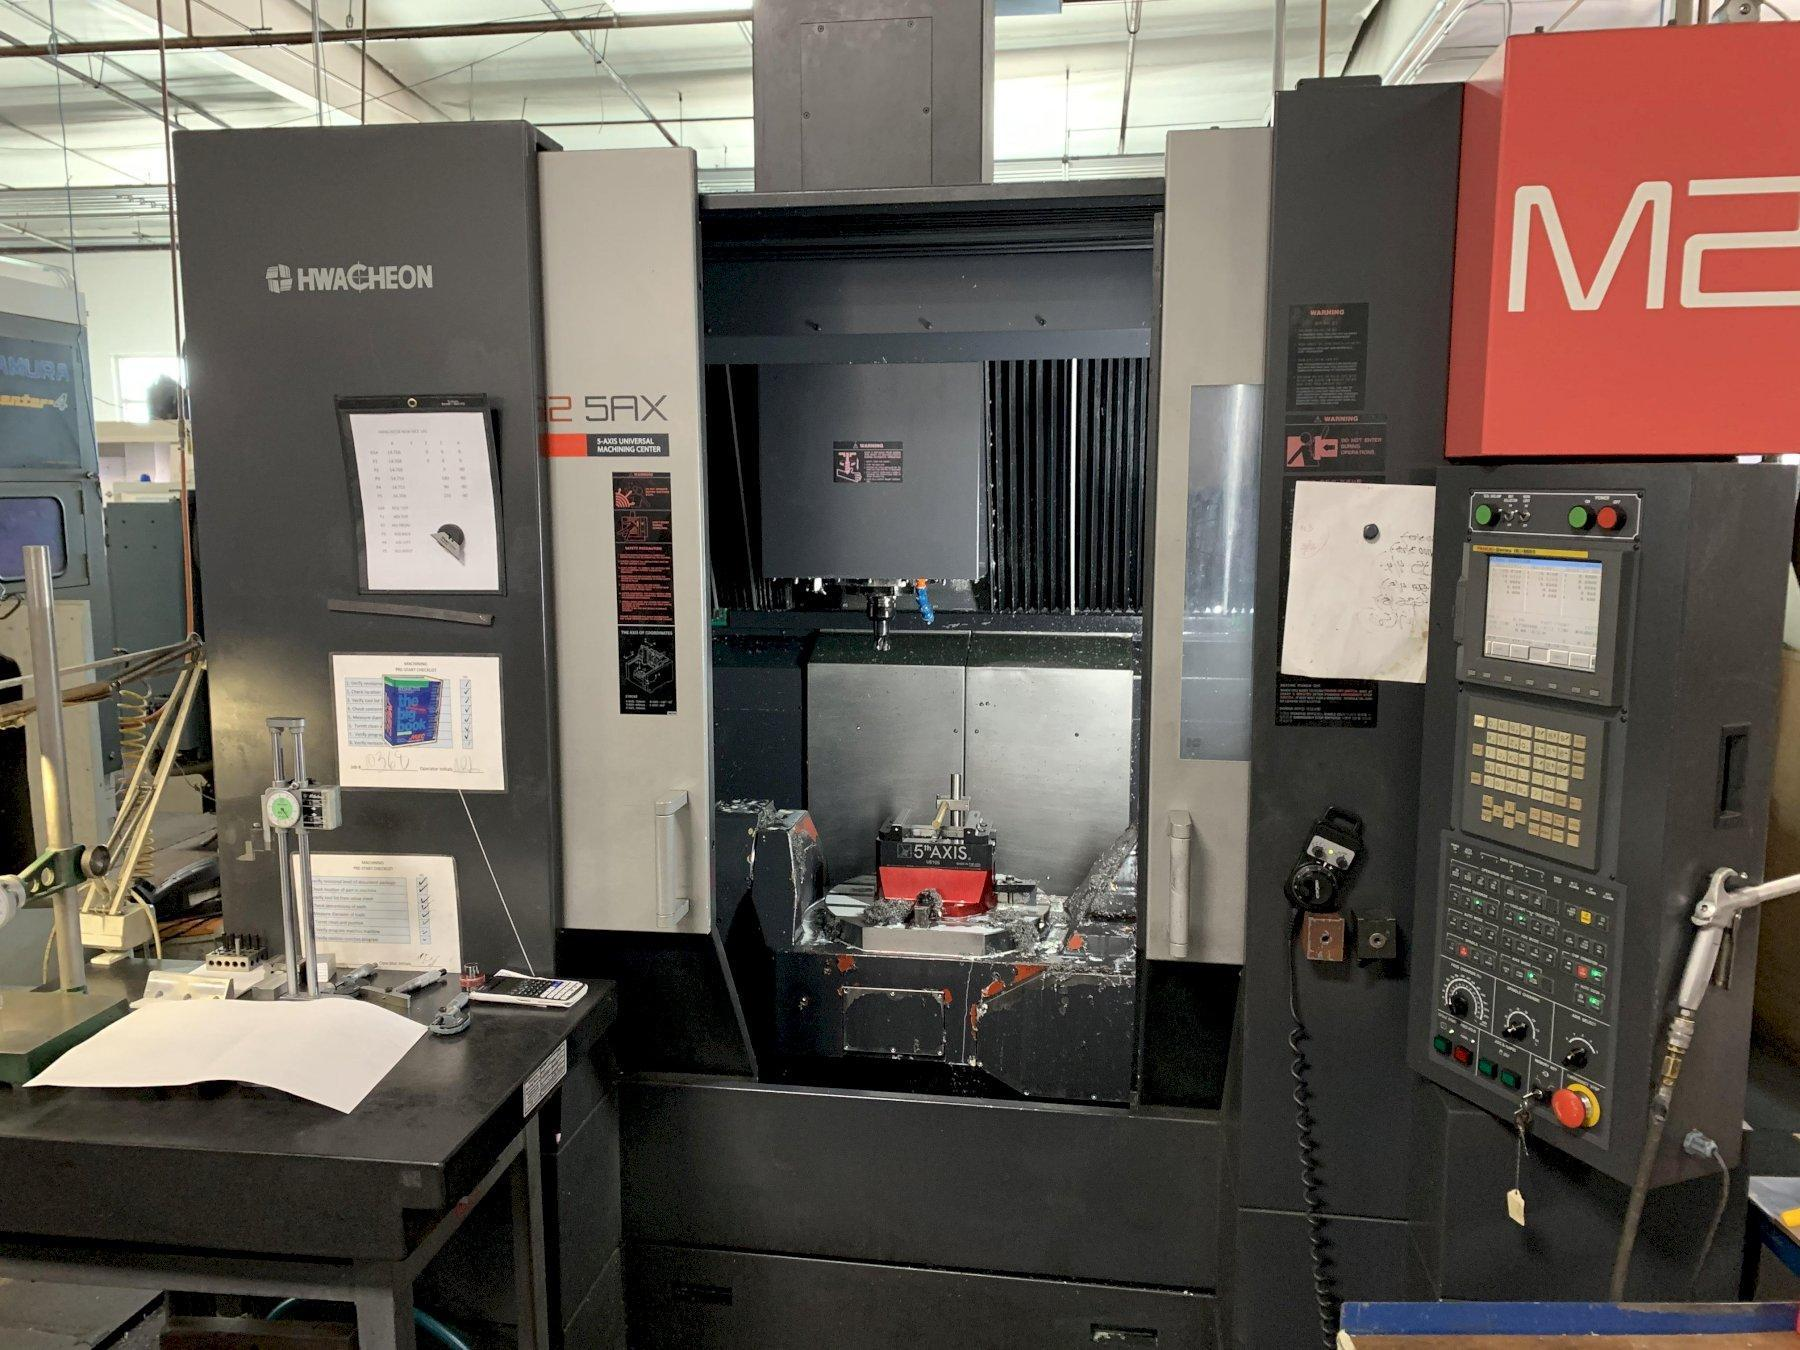 Hwacheon M2-5AX CNC 5-Axis VMC 2008